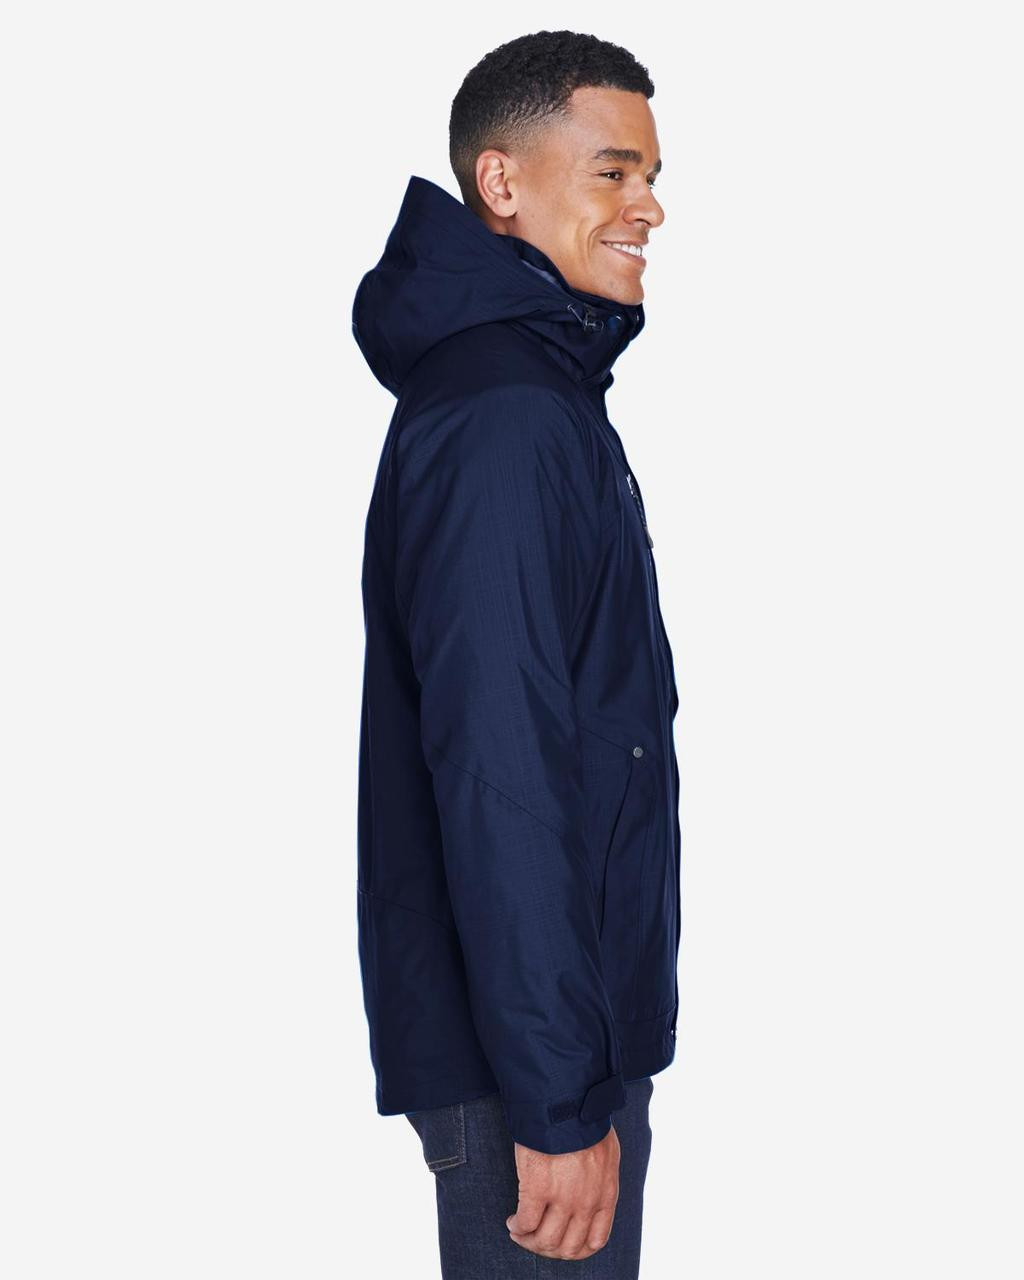 Classic Navy - Side, 88178 North End Caprice 3-in-1 Jacket with Soft Shell Liner | BlankClothing.ca